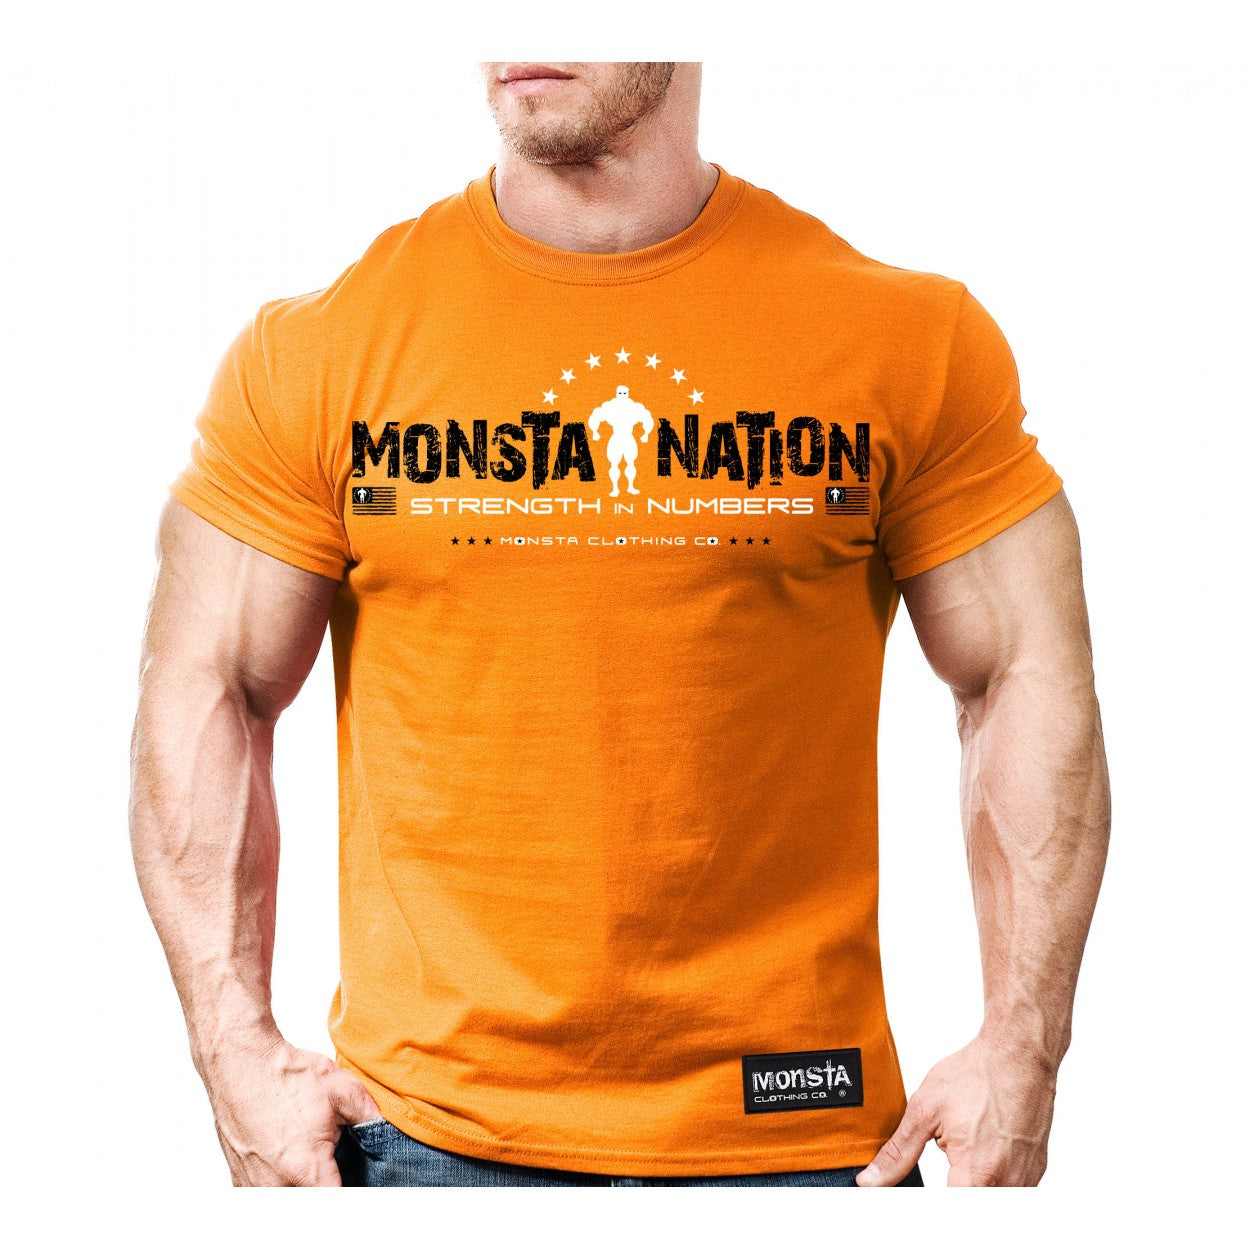 TEE: MONSTA NATION - Monsta Clothing Australia